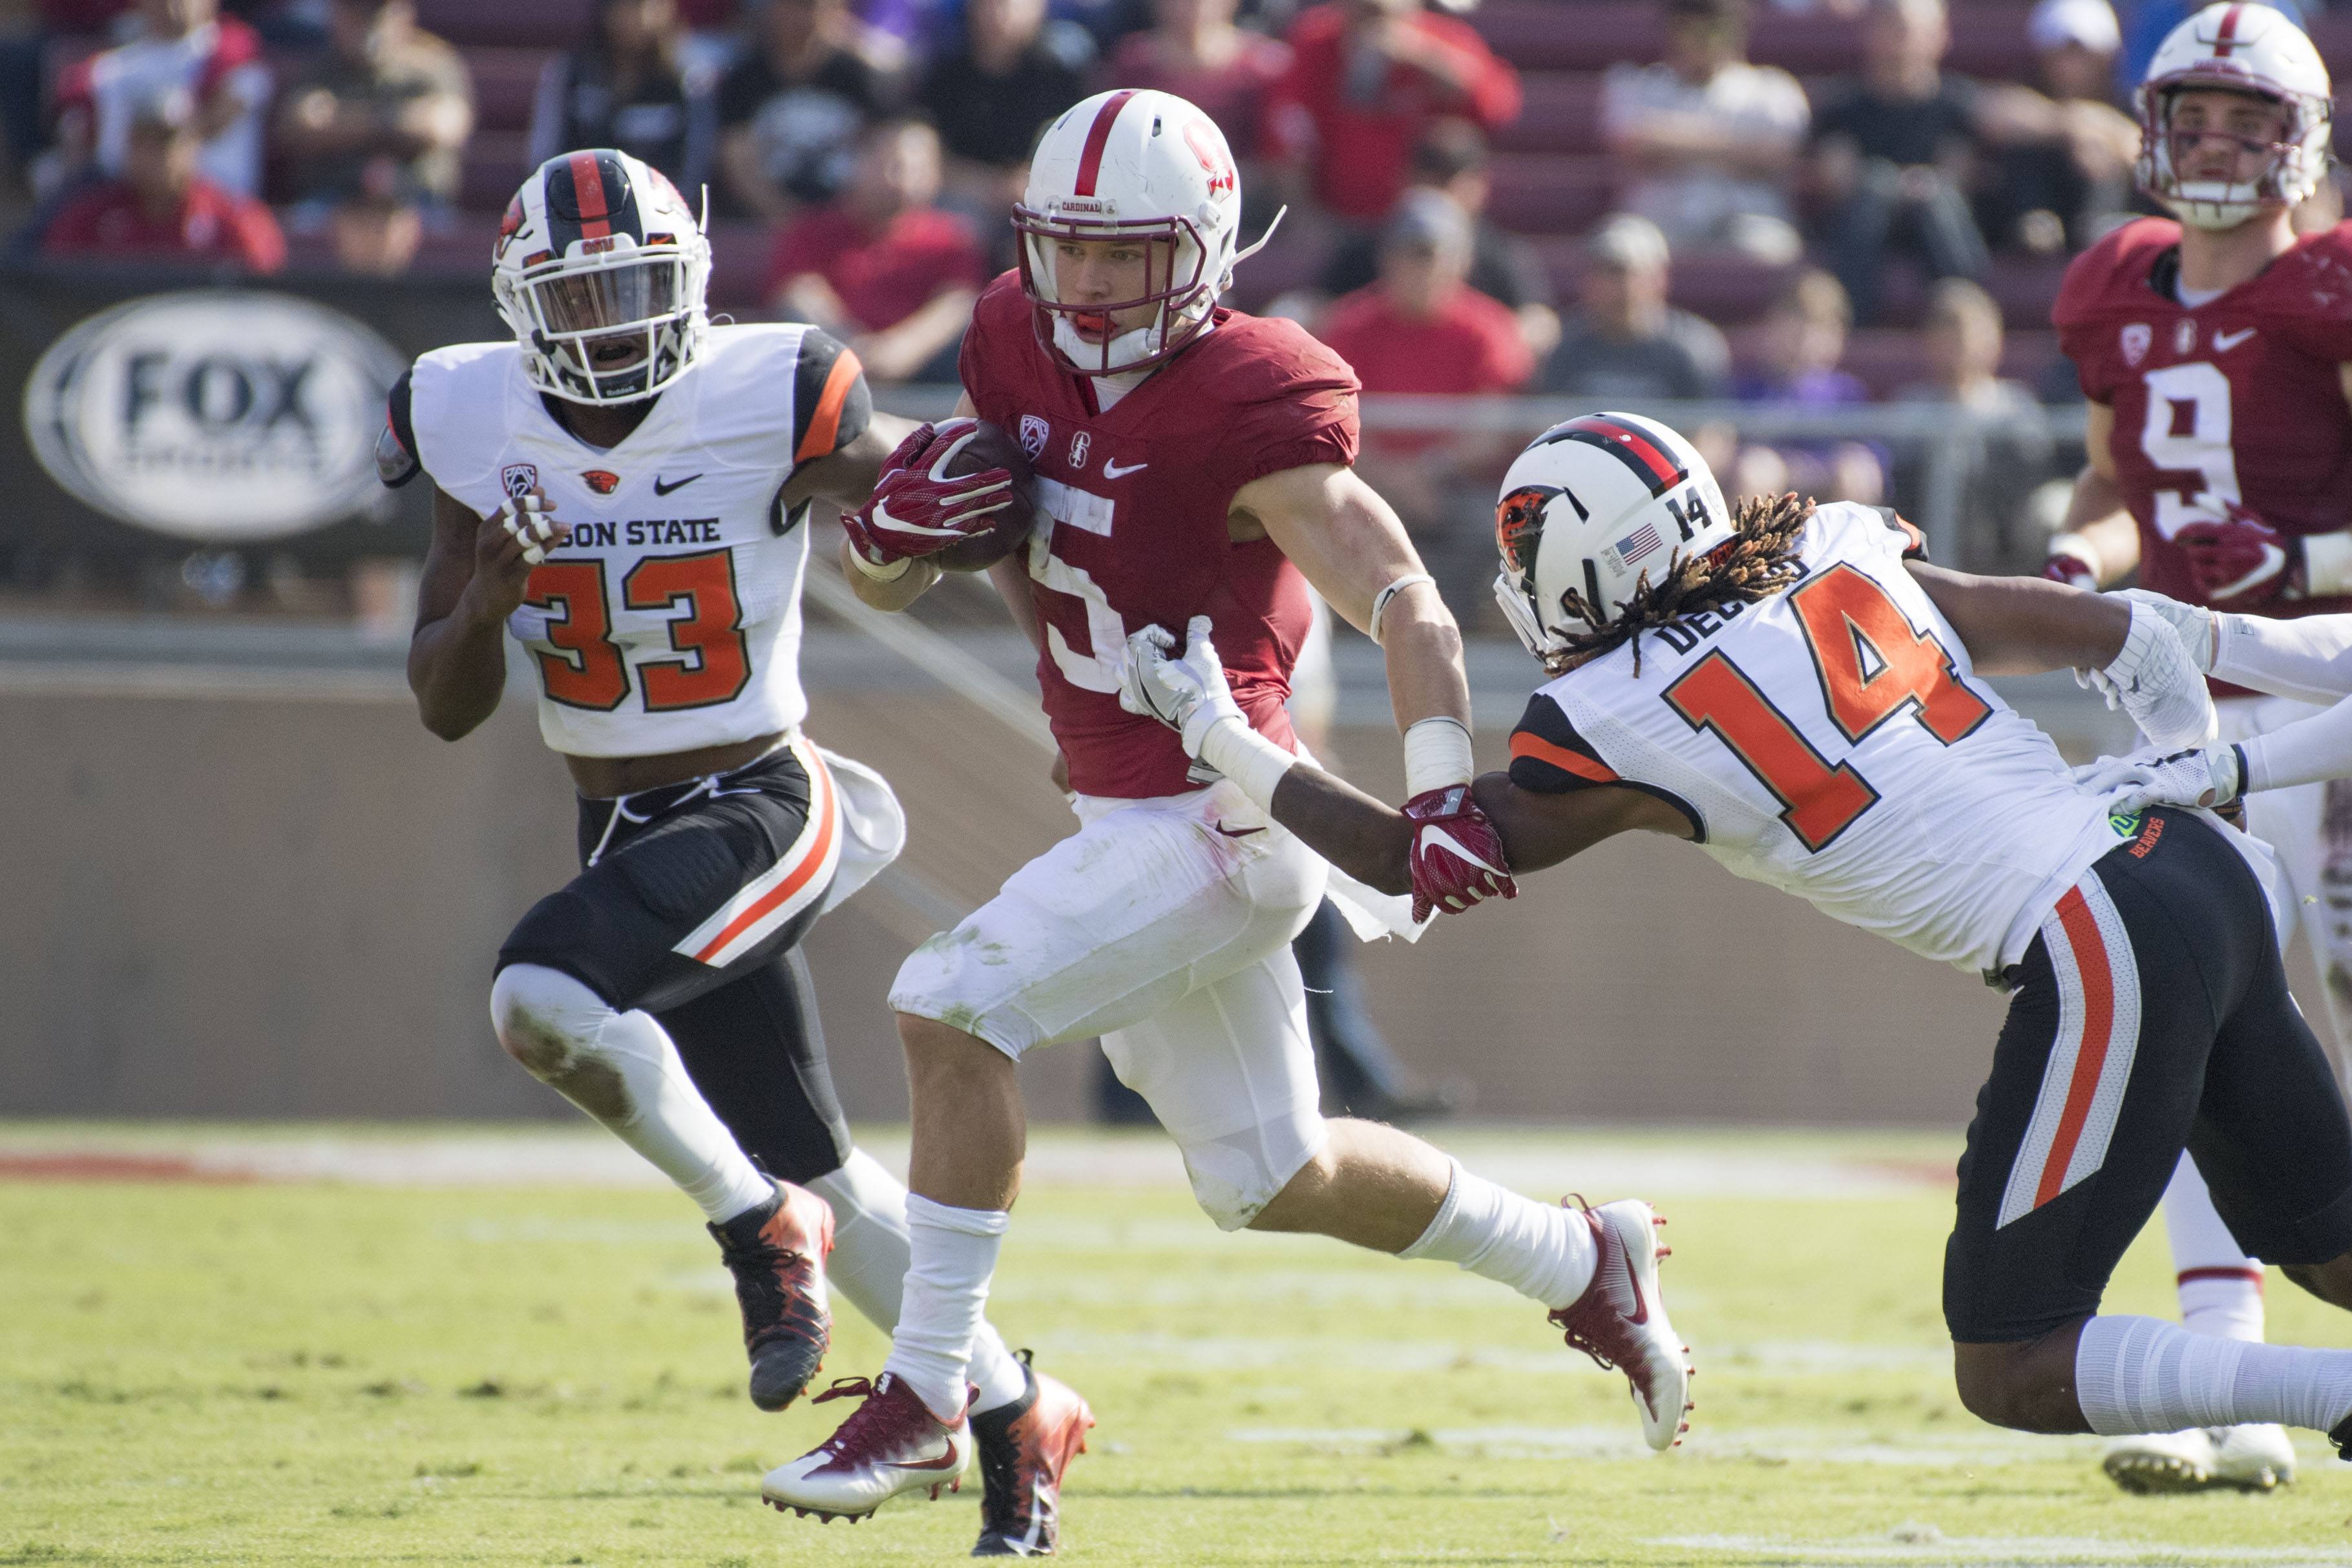 9655419-ncaa-football-oregon-state-at-stanford